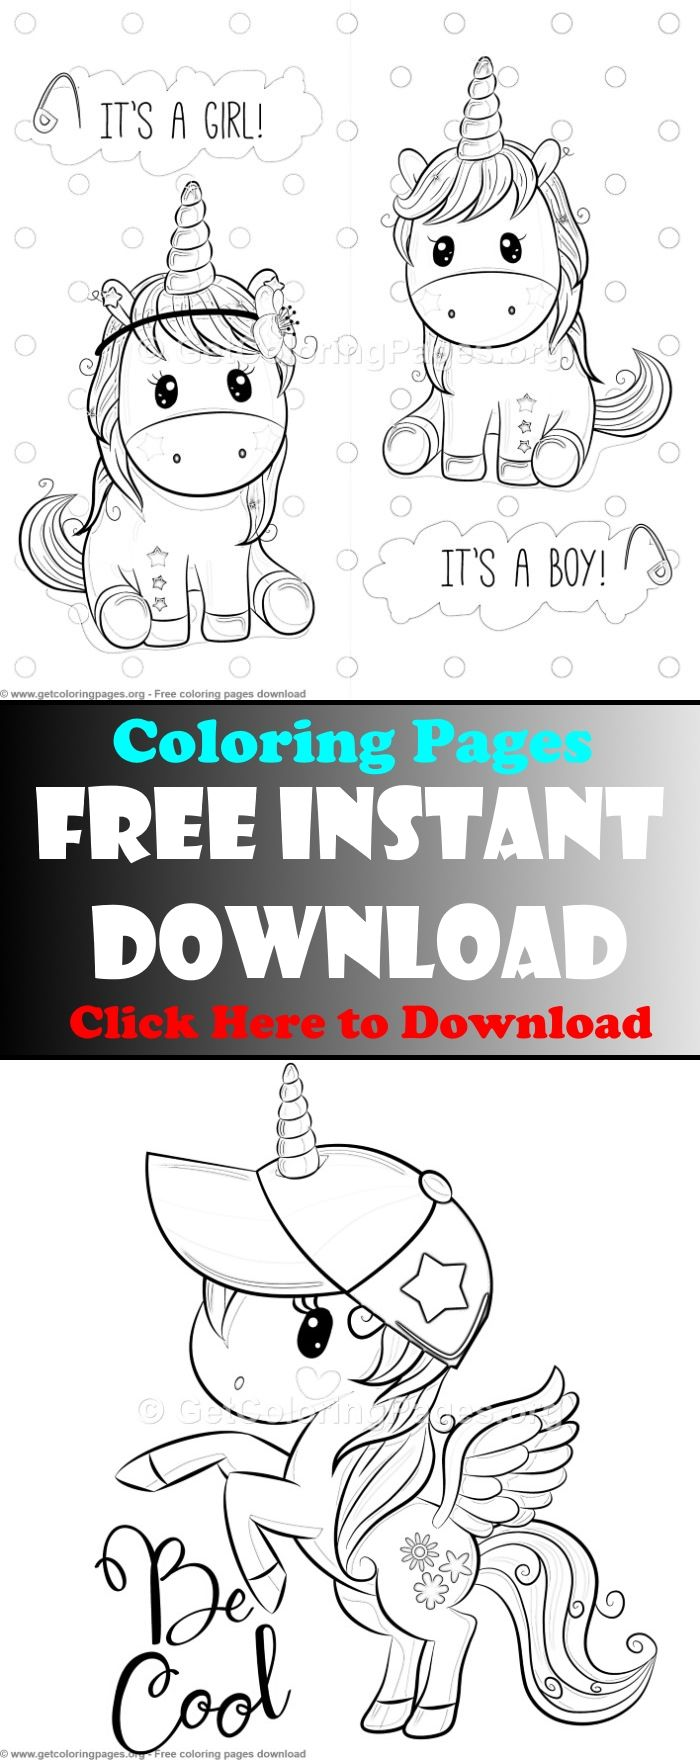 unicorn coloring pages,cute unicorn coloring pages,unicorn coloring ...